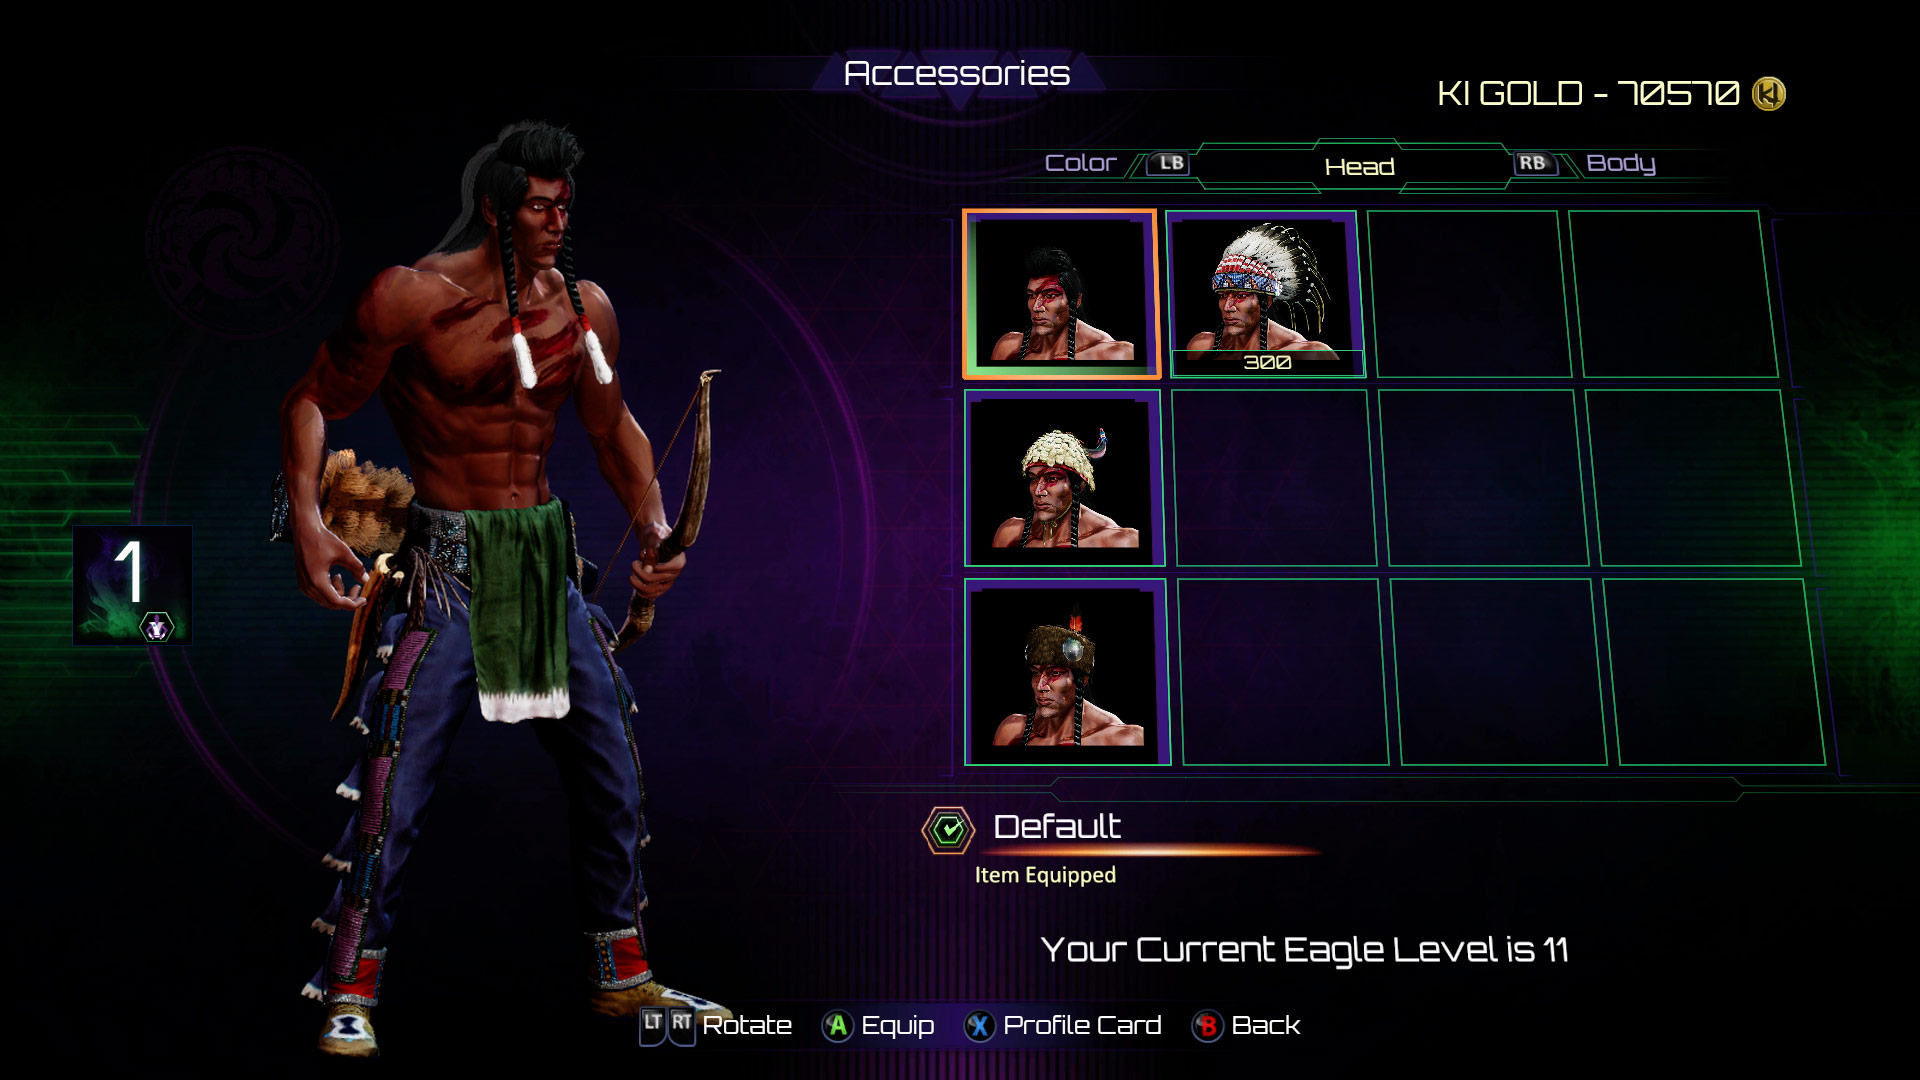 Eagle's accessories in Killer Instinct 5 out of 8 image gallery